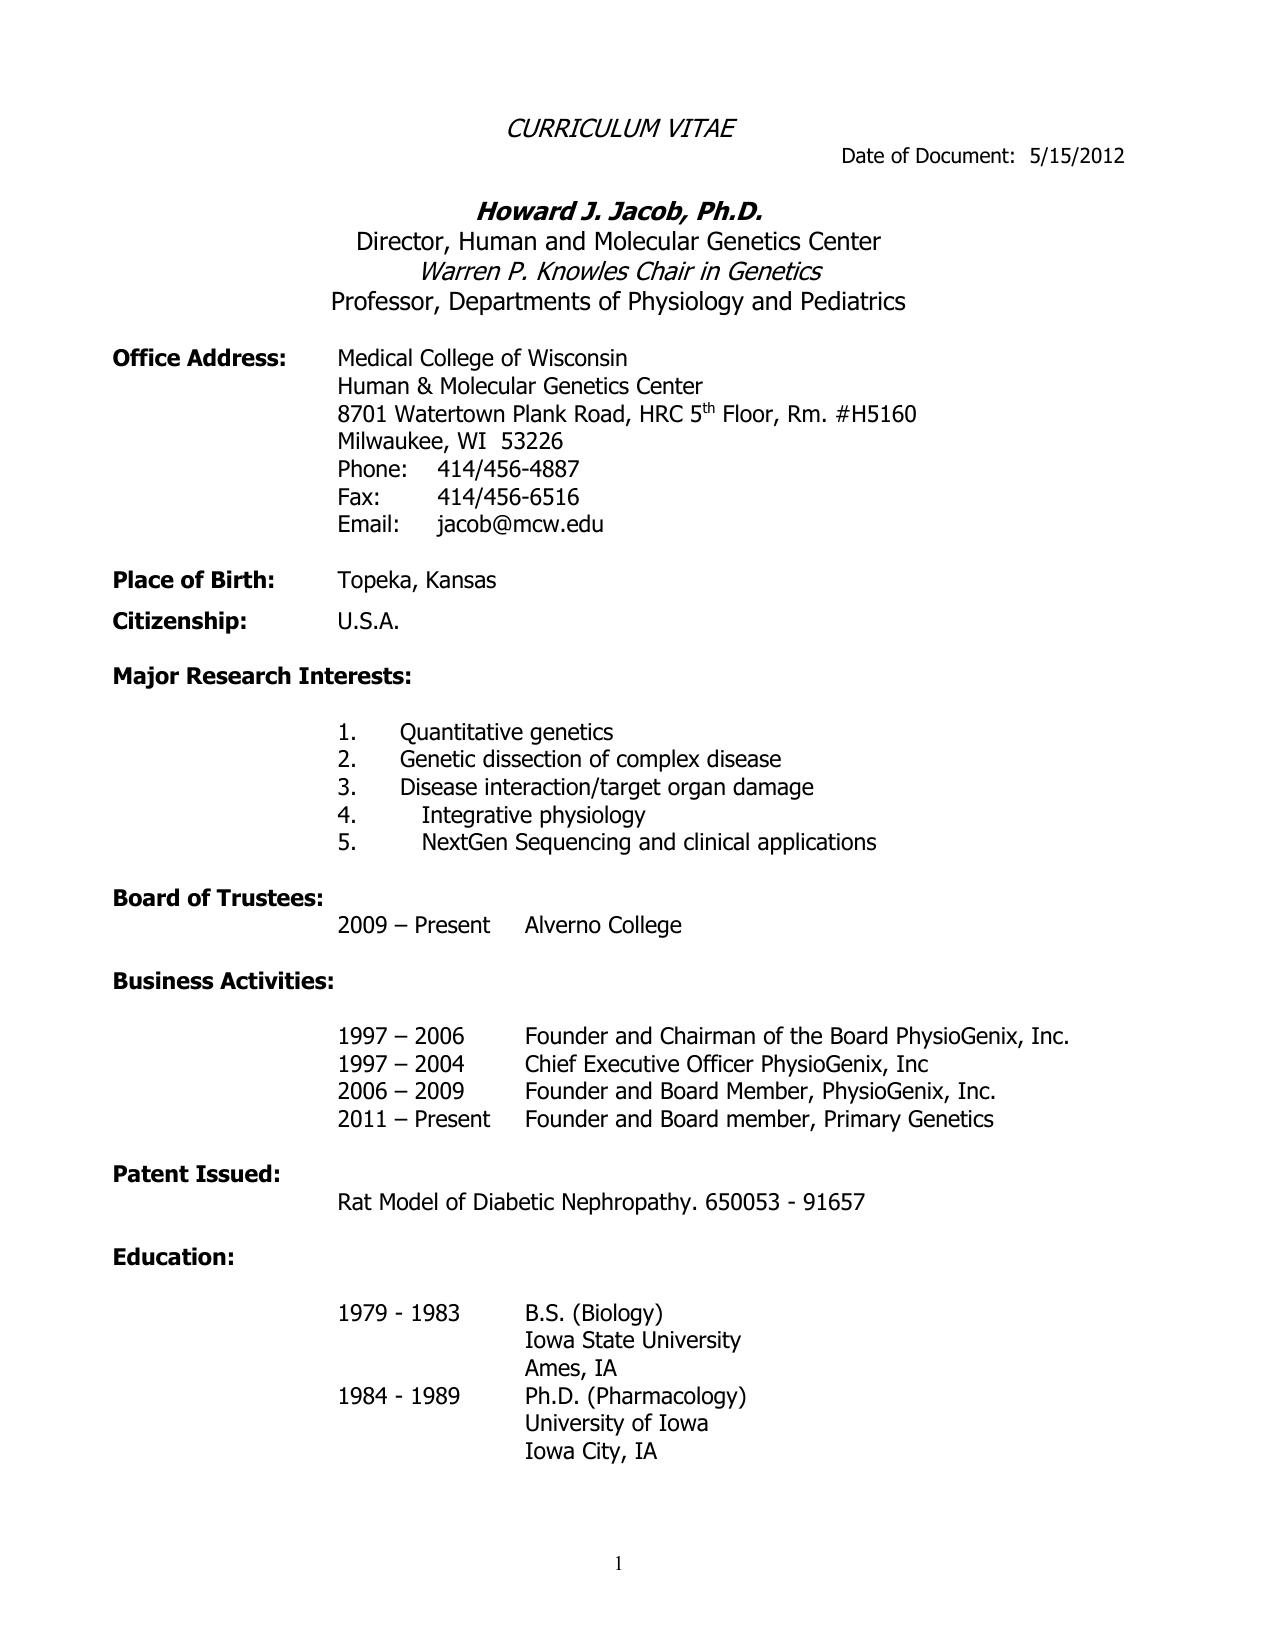 CURRICULUM VITAE - MCW - Department of Physiology